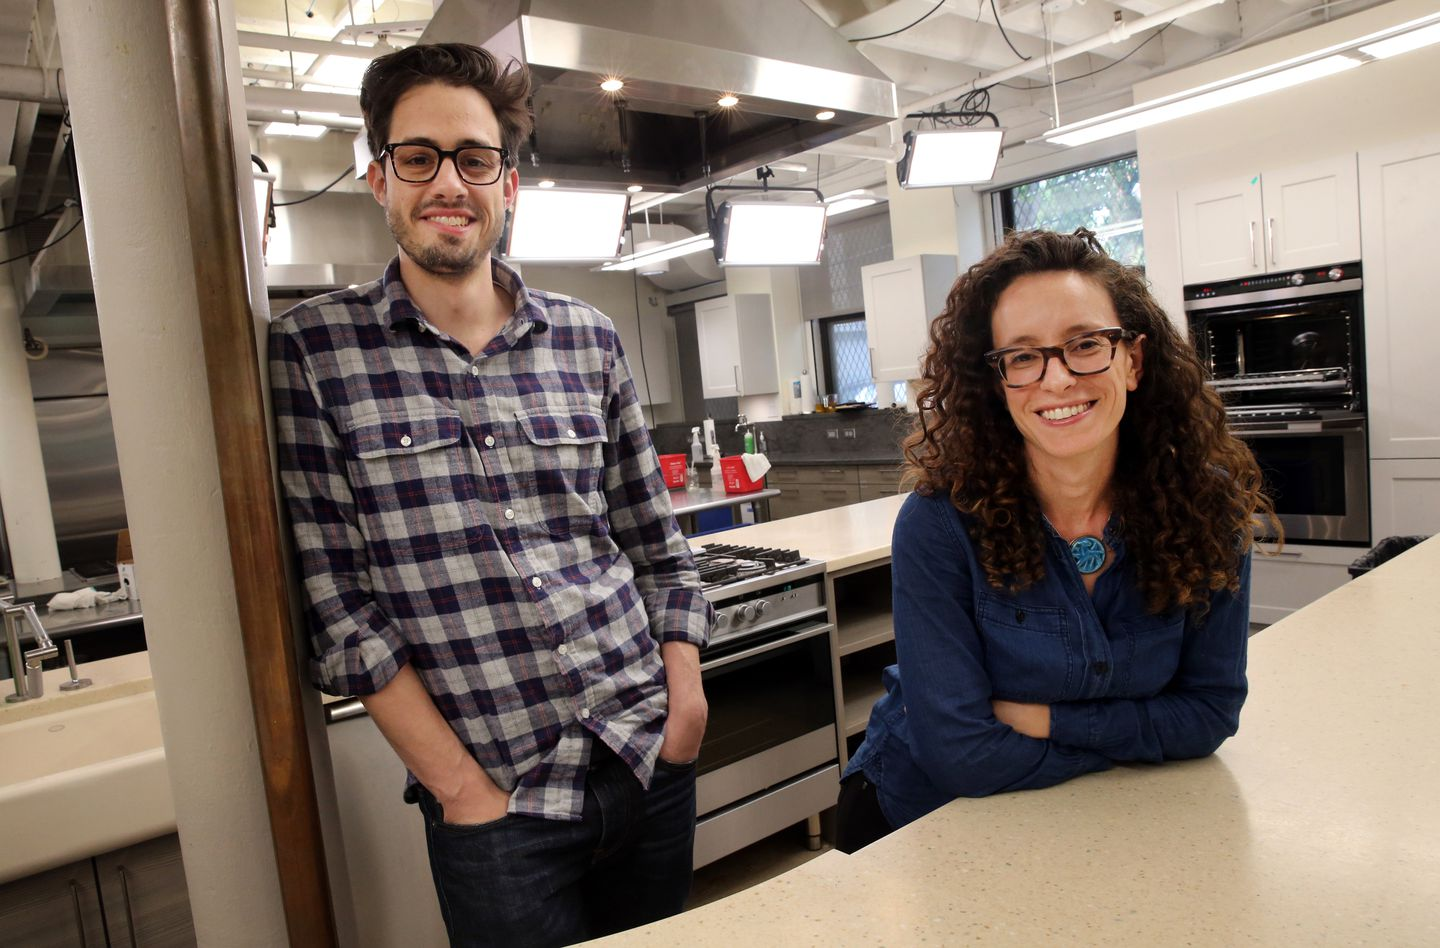 next venture for America's Test Kitchen